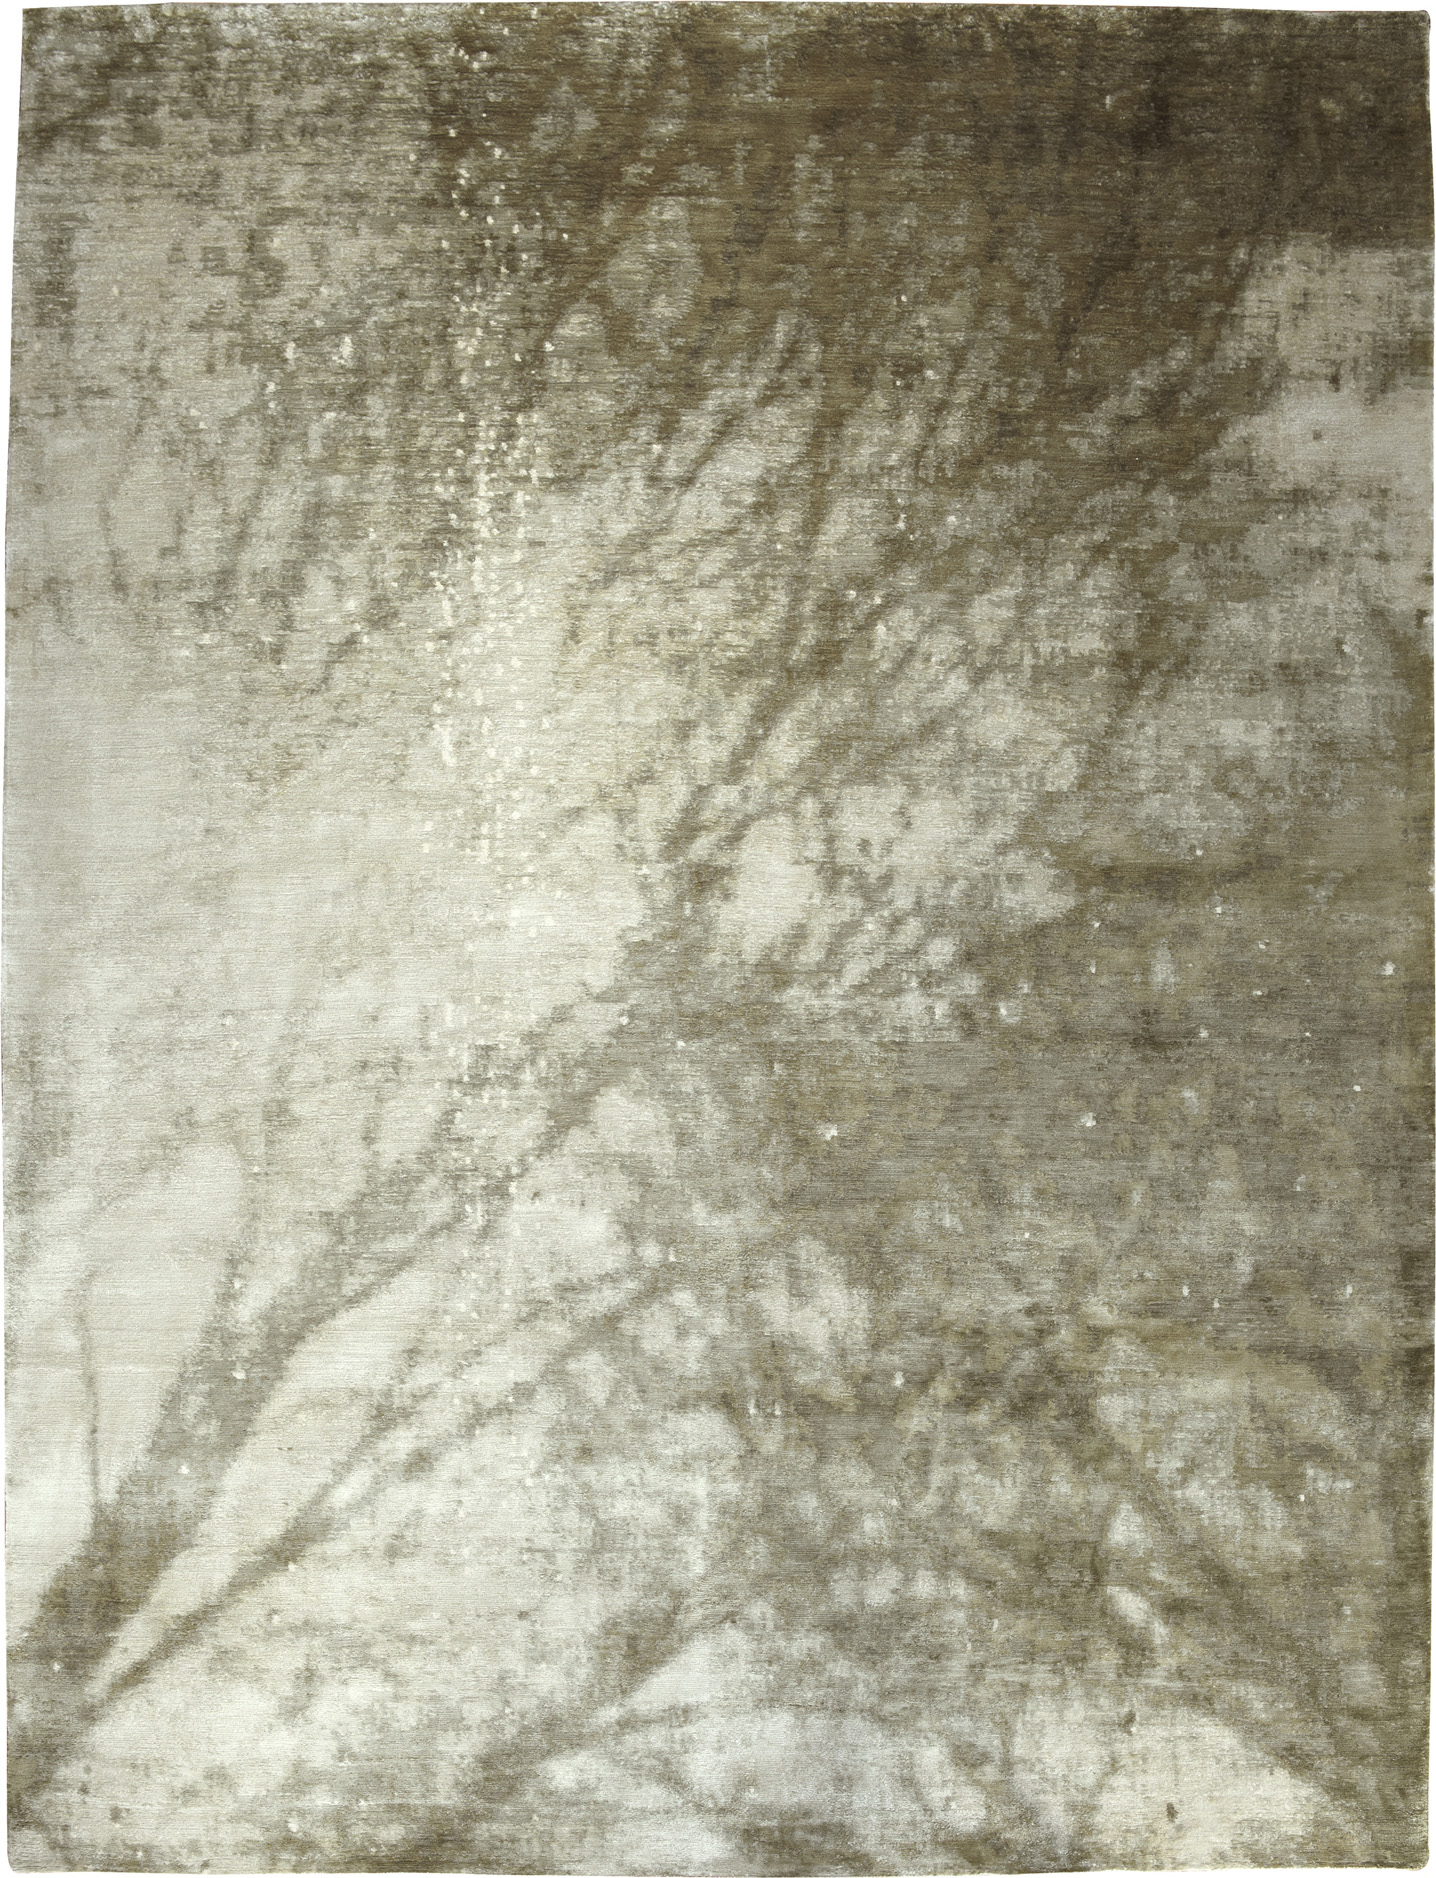 'Branches' by Tania Johnson | Image courtesy of Tania Johnson.